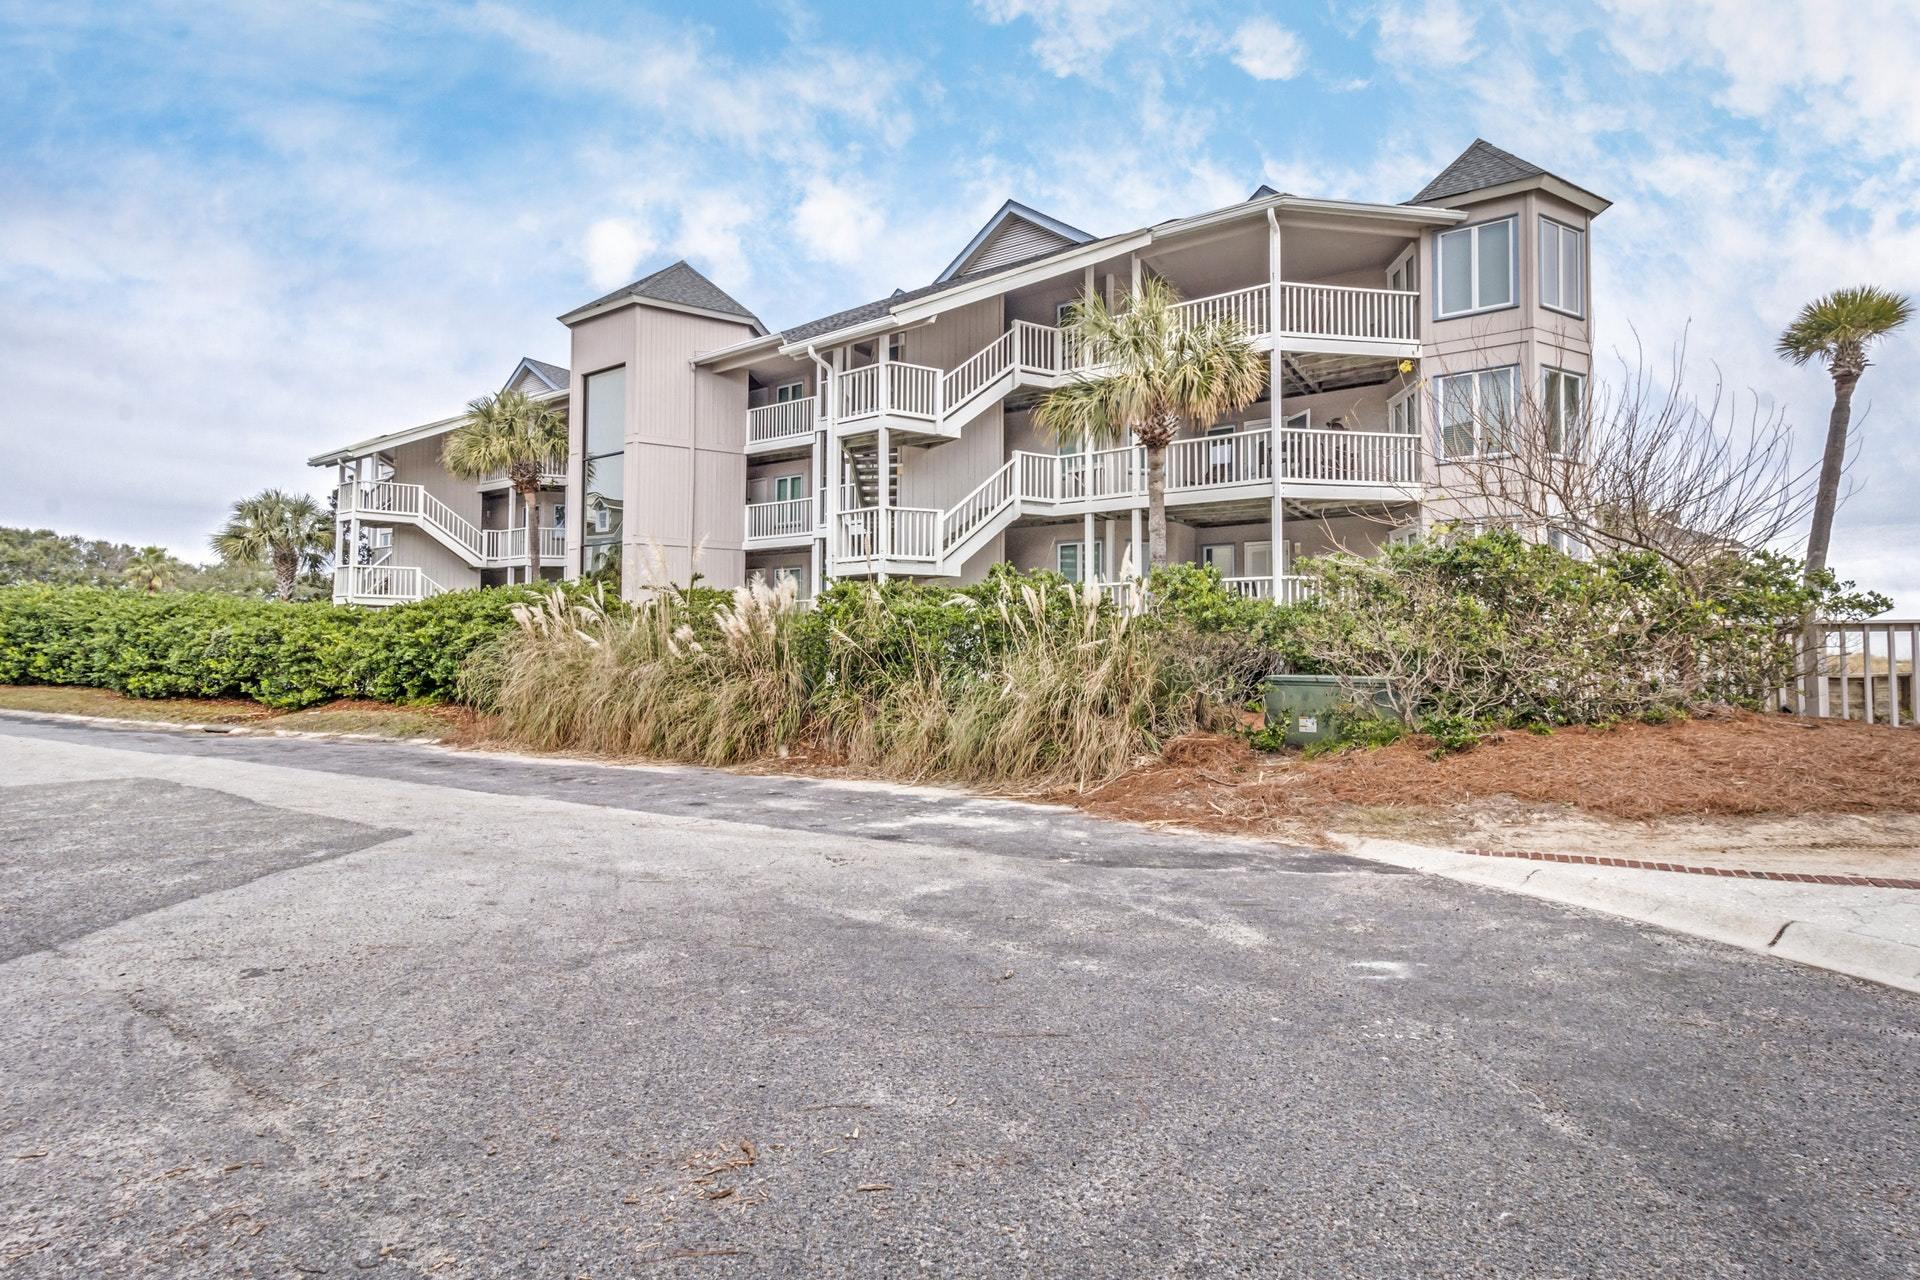 Wild Dunes Resort Homes For Sale - 102 I Tidewater, Isle of Palms, SC - 10